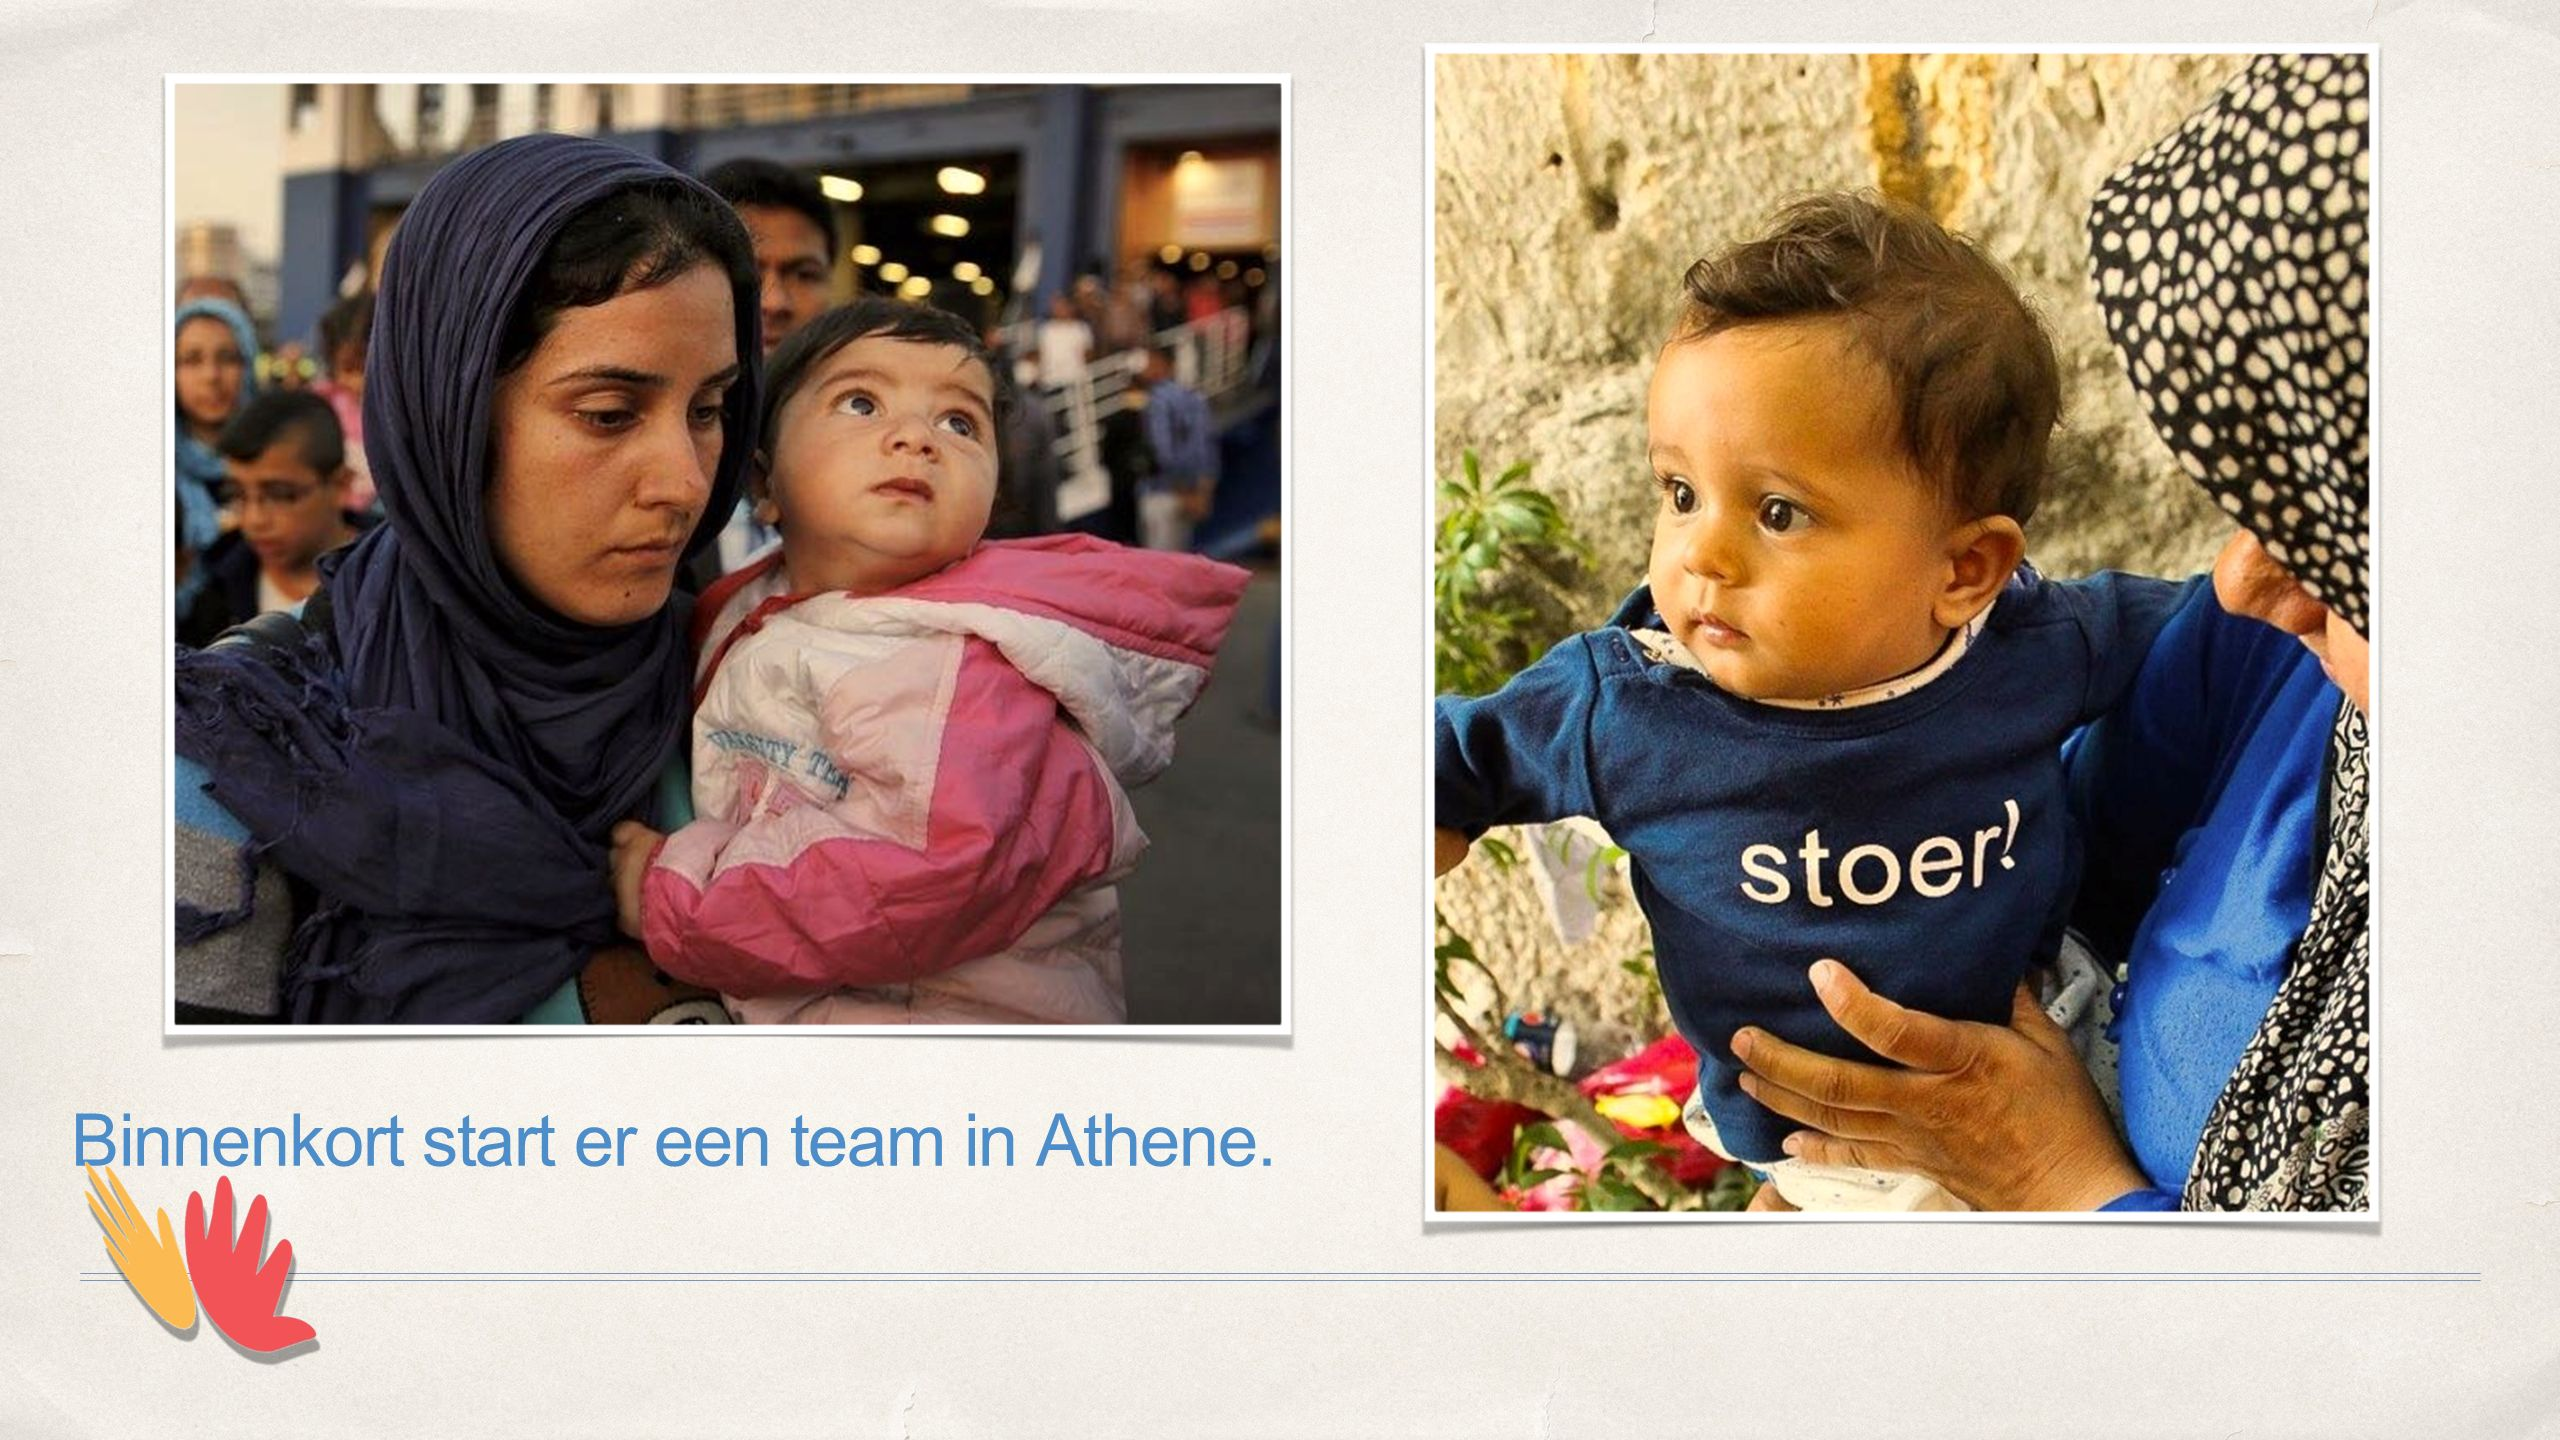 Binnenkort start er een team in Athene.